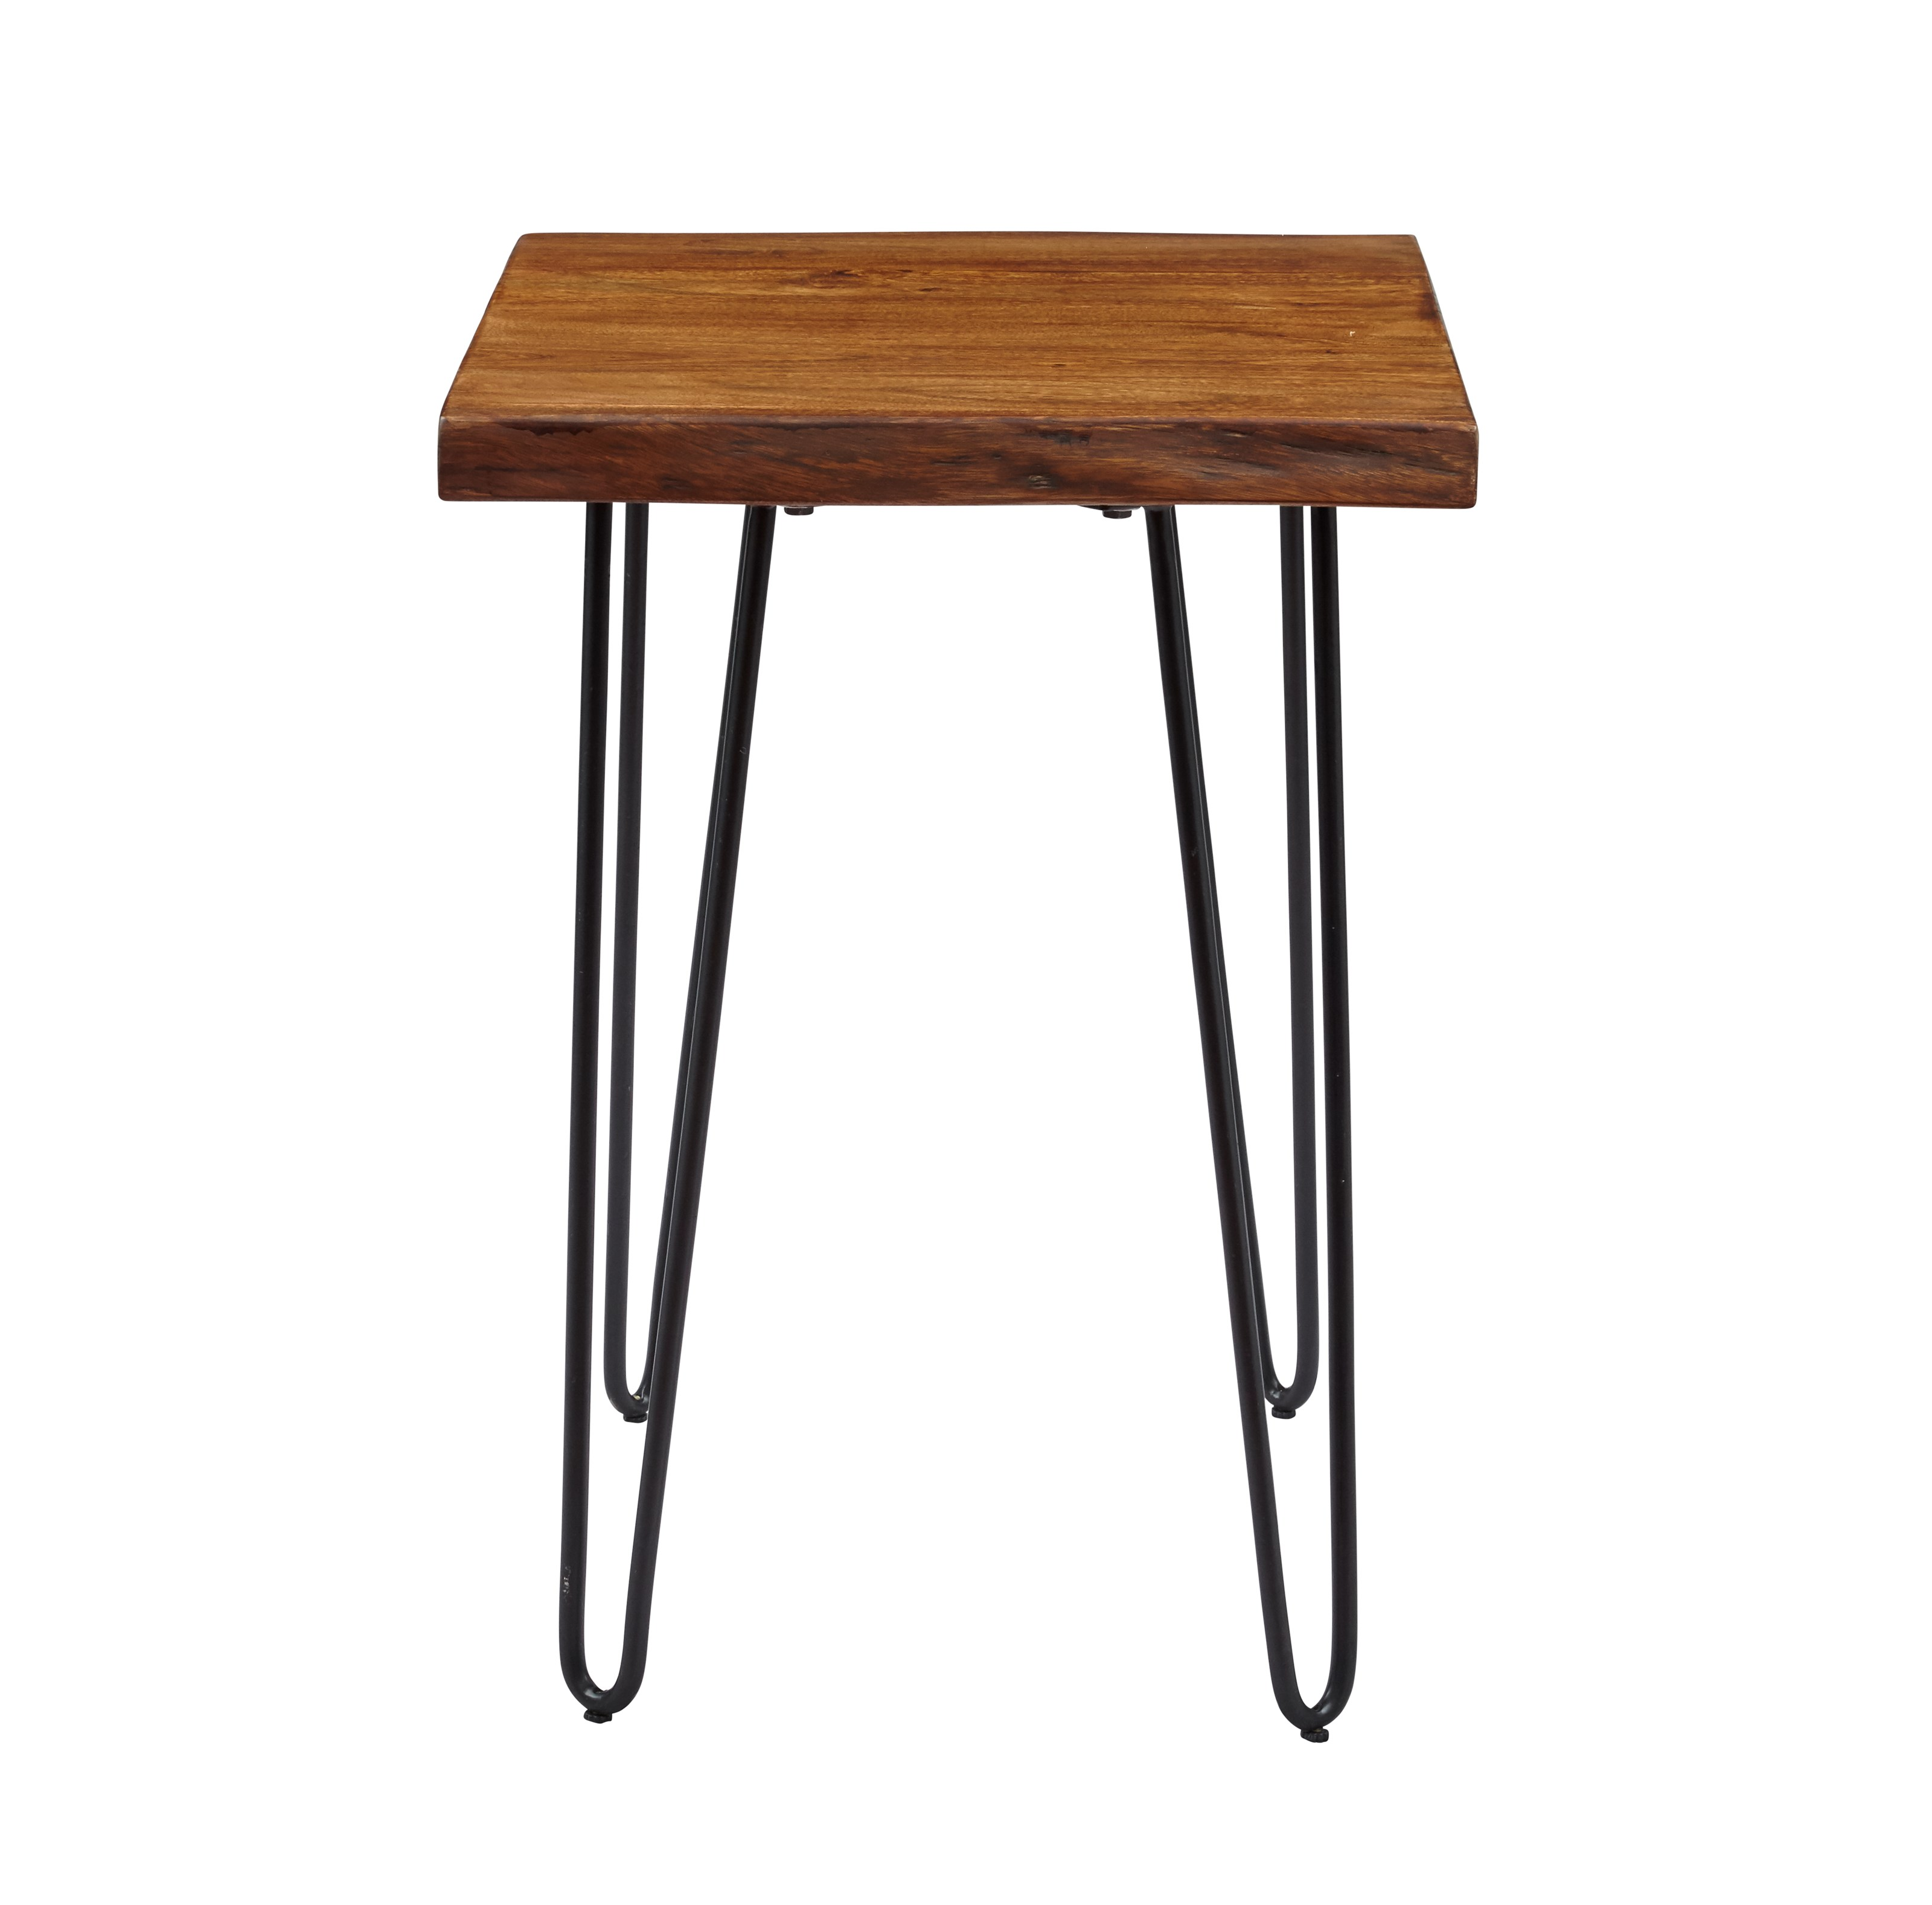 Nature's Edge Live Edge Chairside Table by Jofran at Sparks HomeStore